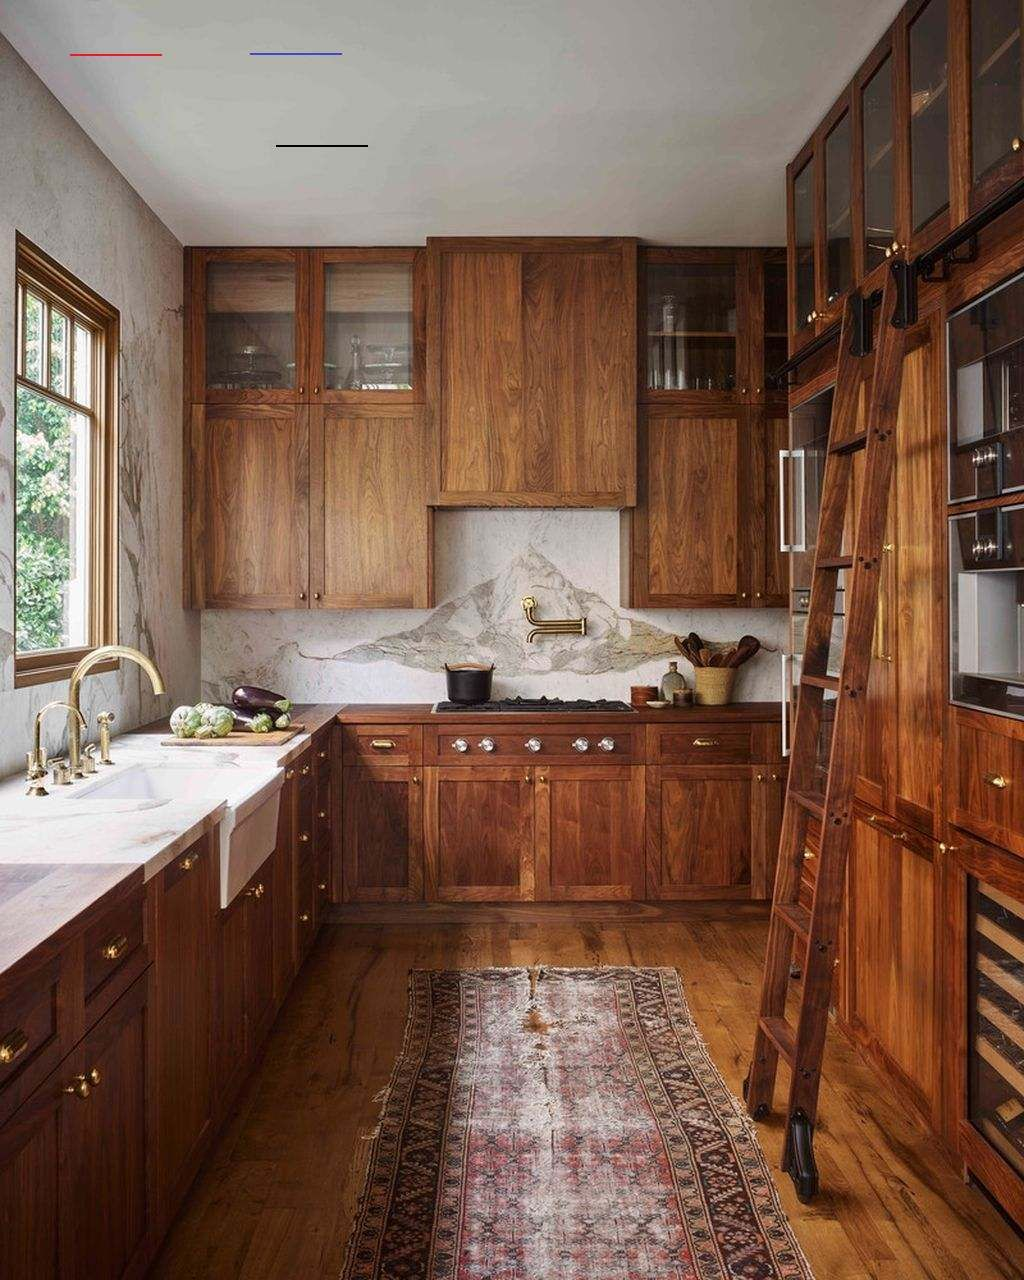 30+ Rustic Wooden Kitchen Design And Decoration Ideas You